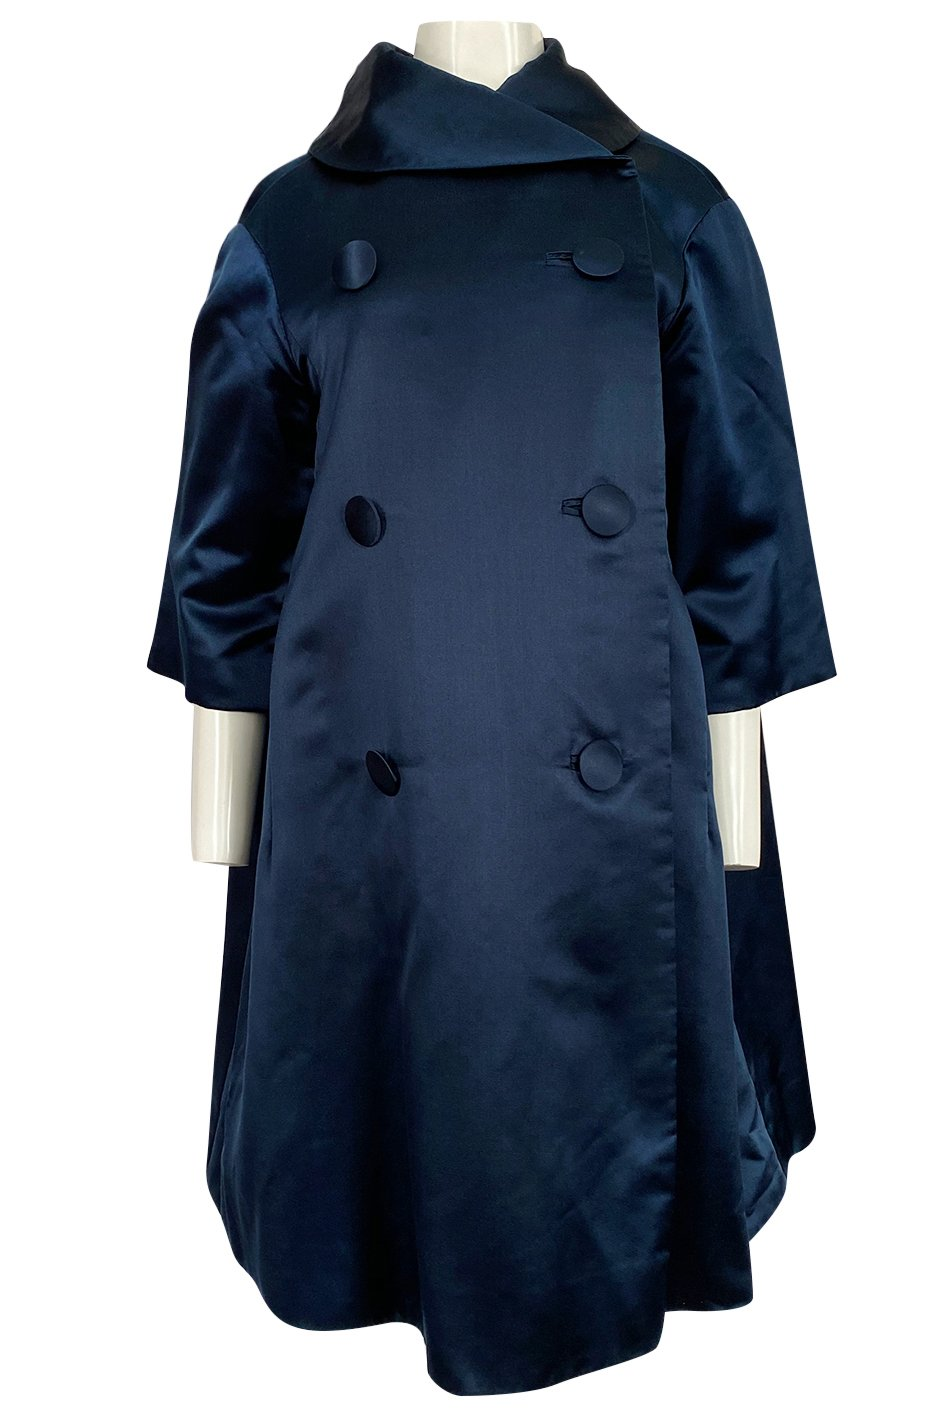 Sustainable Sunday: The Most Beautiful Christian Dior Coat You've Ever Did See!